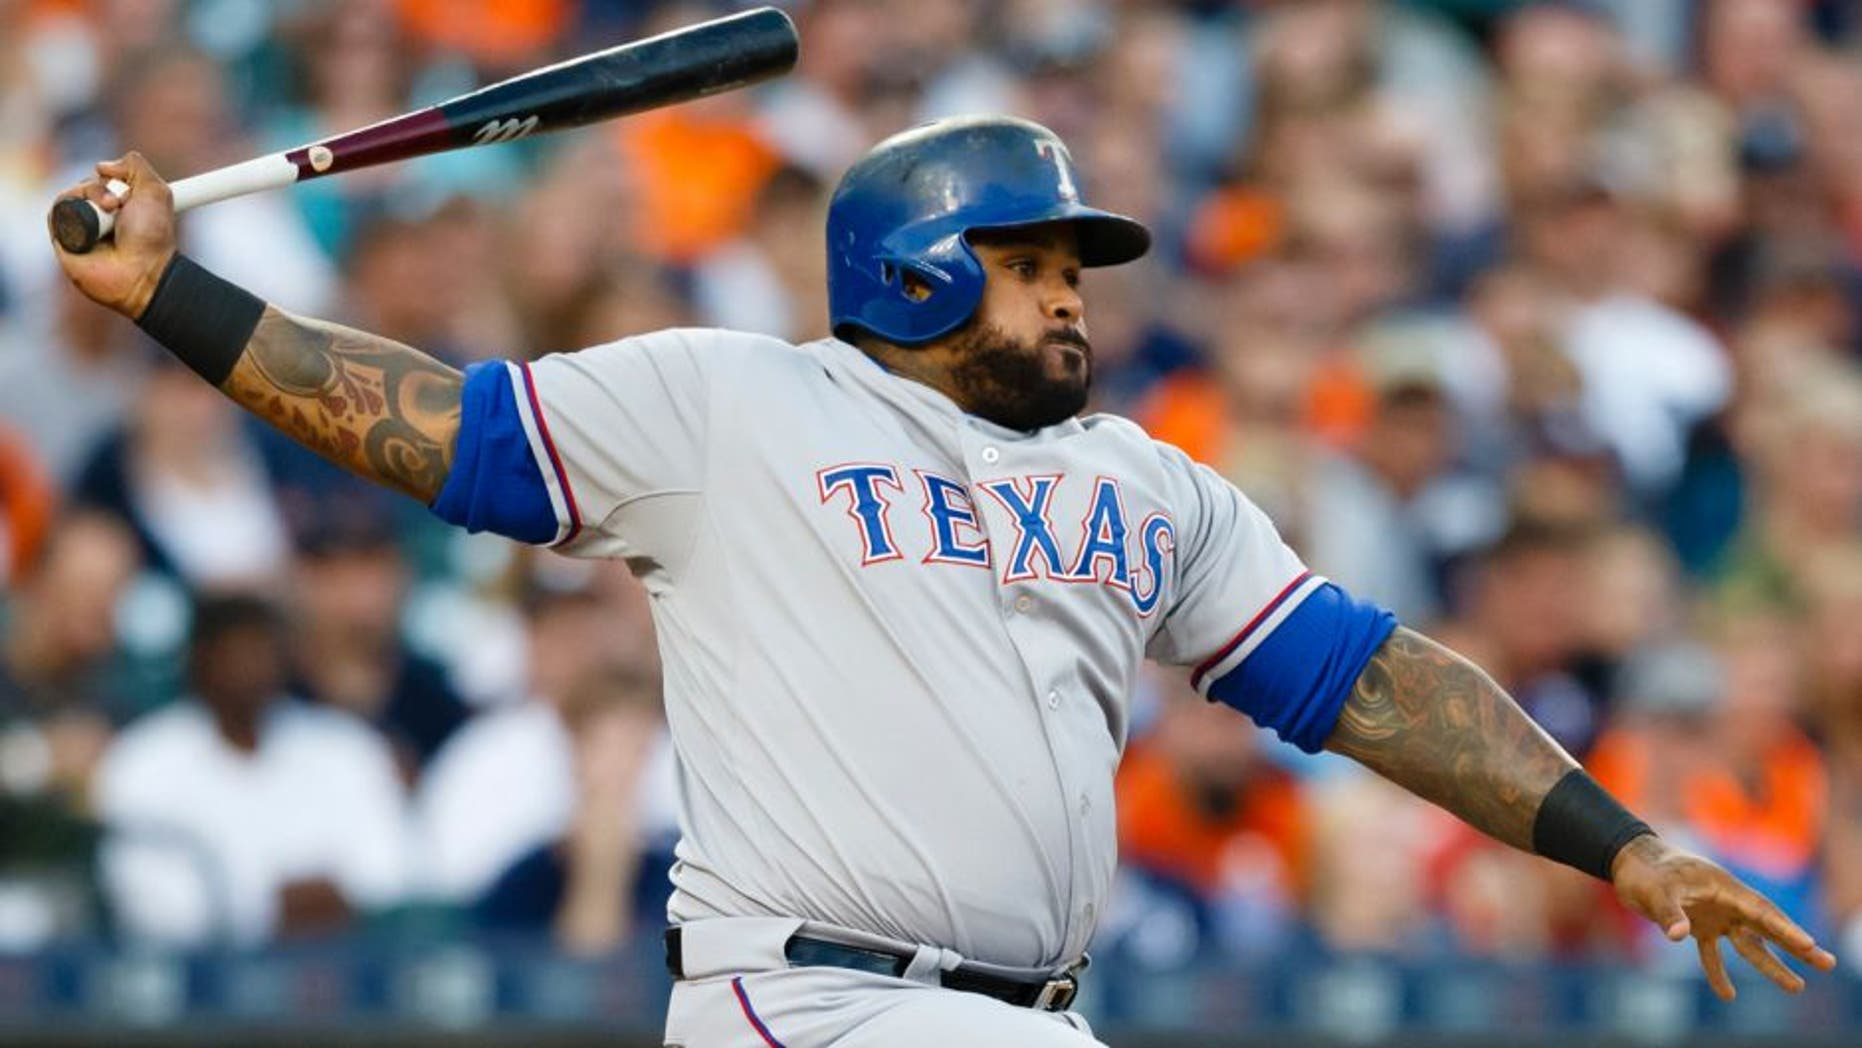 Aug 22, 2015; Detroit, MI, USA; Texas Rangers designated hitter Prince Fielder (84) hits an RBI single in the third inning against the Detroit Tigers at Comerica Park. Mandatory Credit: Rick Osentoski-USA TODAY Sports